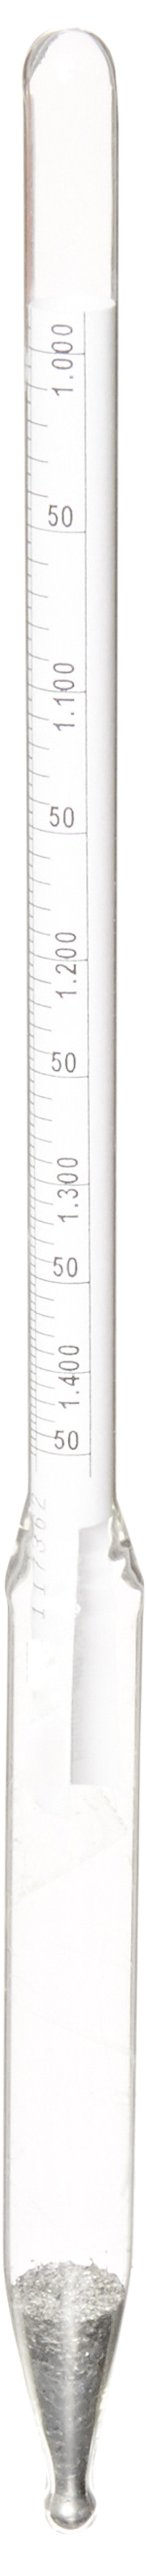 Chase Instruments 31500 Dual Scale Baume Heavy Specific Gravity Hydrometer, 1.000-1.450 Graduation Range, 0 to 45 Range, 0.005mm Interval, 300mm Length